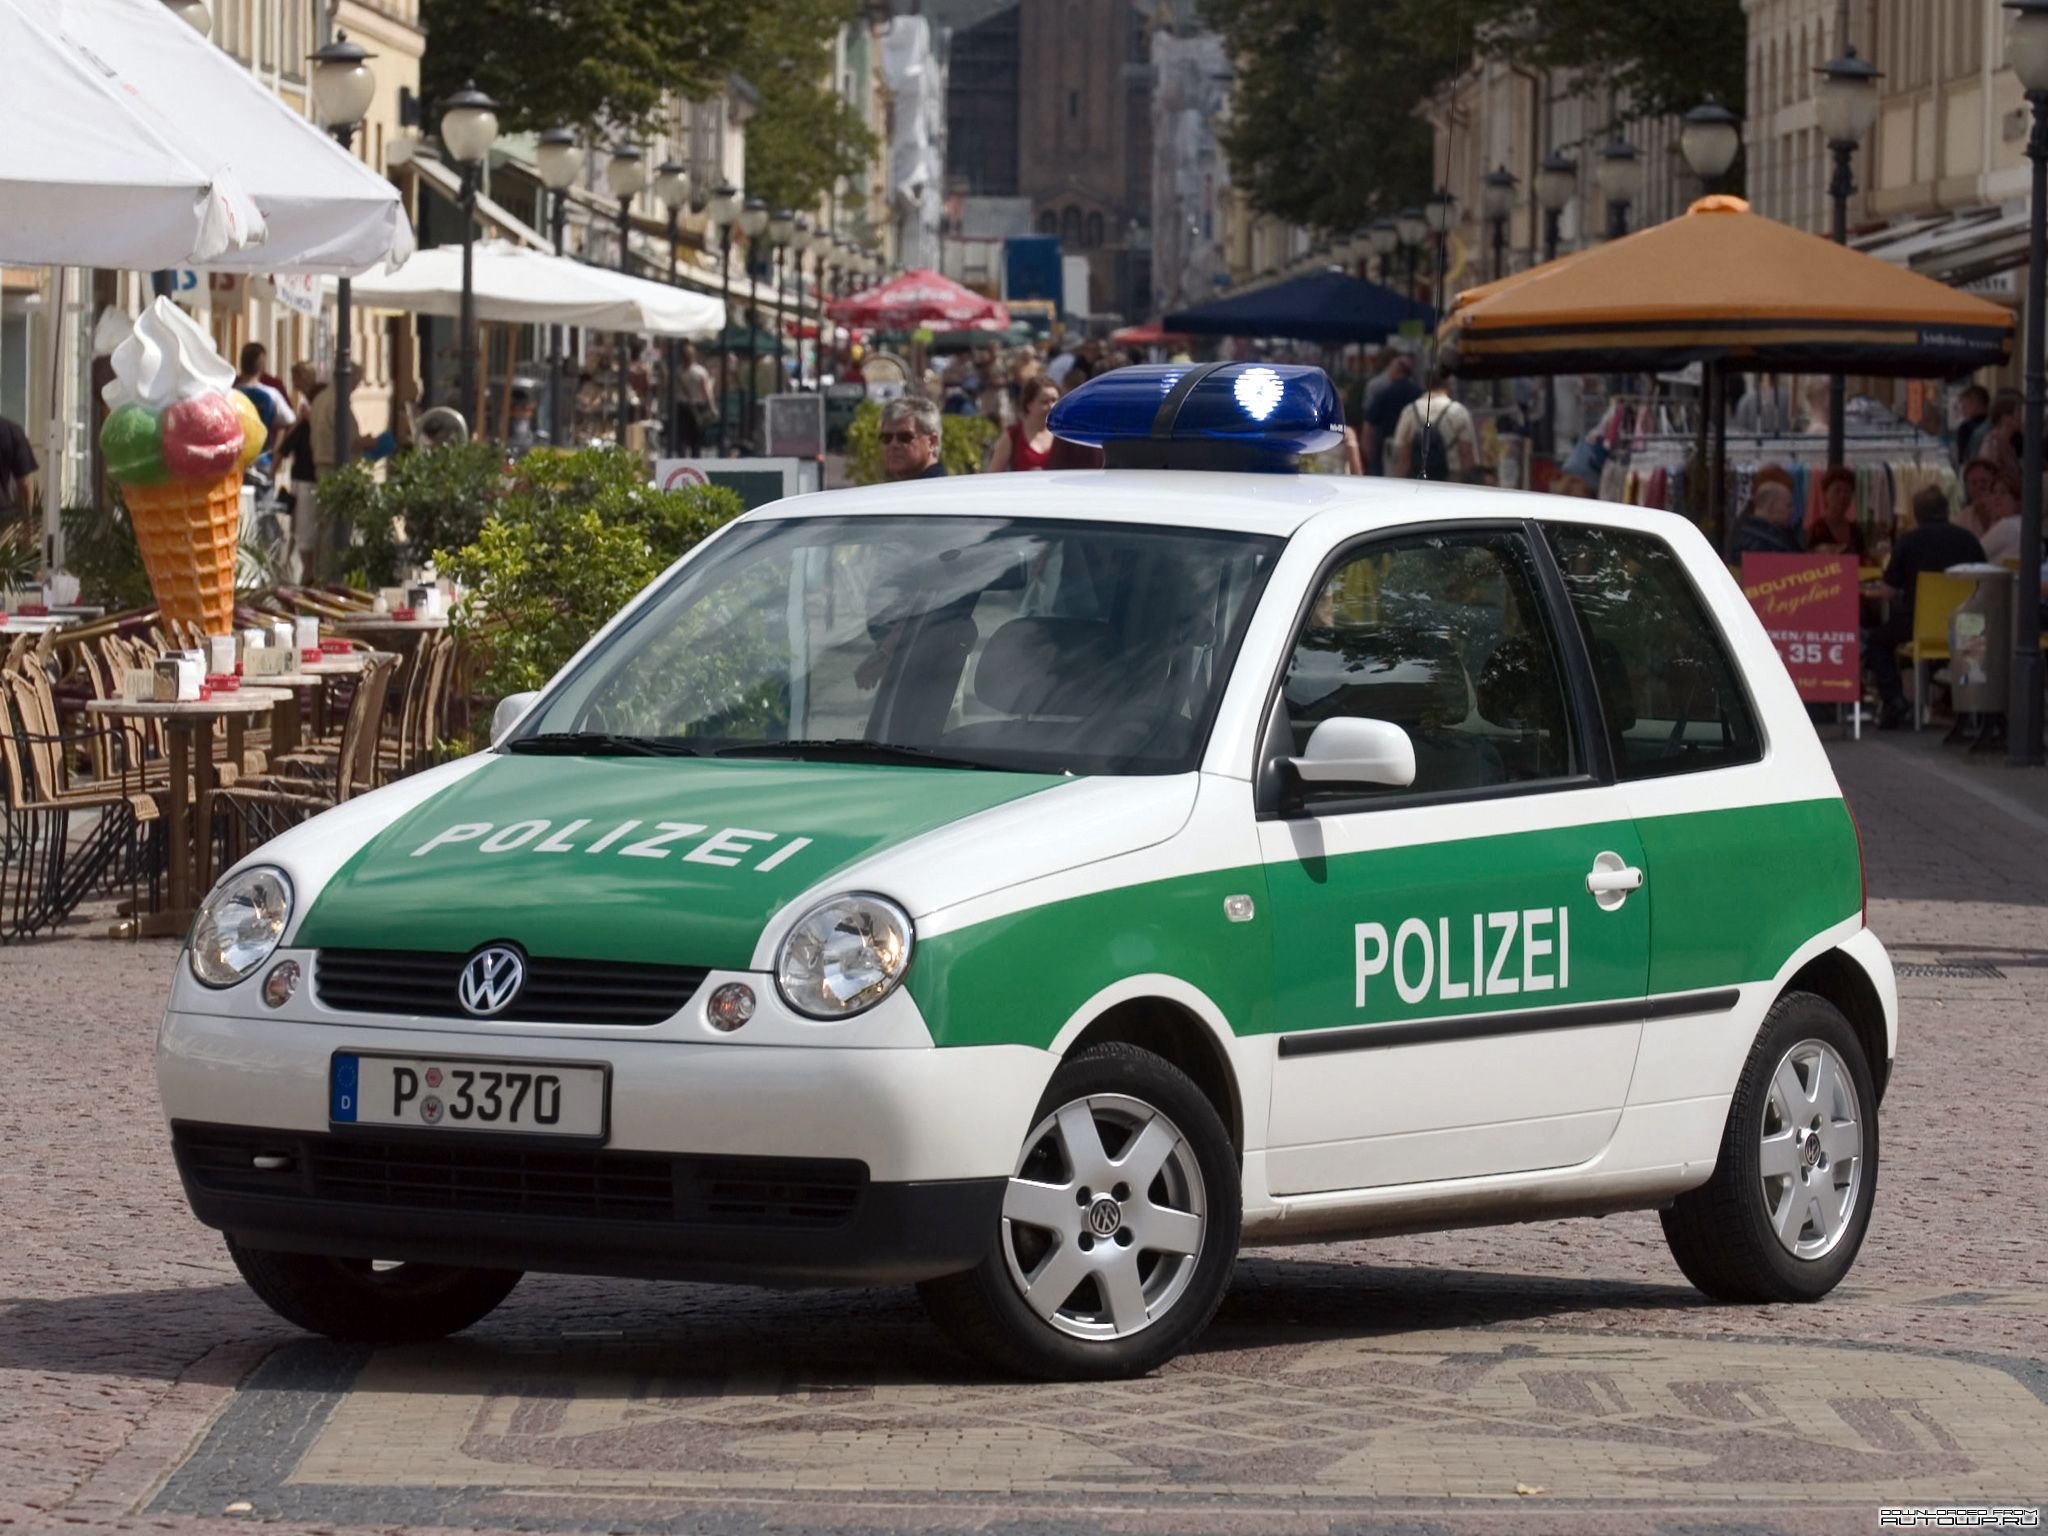 vw lupo 1 4 16v polizei potsdam 2002 police pinterest potsdam police cars and cars. Black Bedroom Furniture Sets. Home Design Ideas